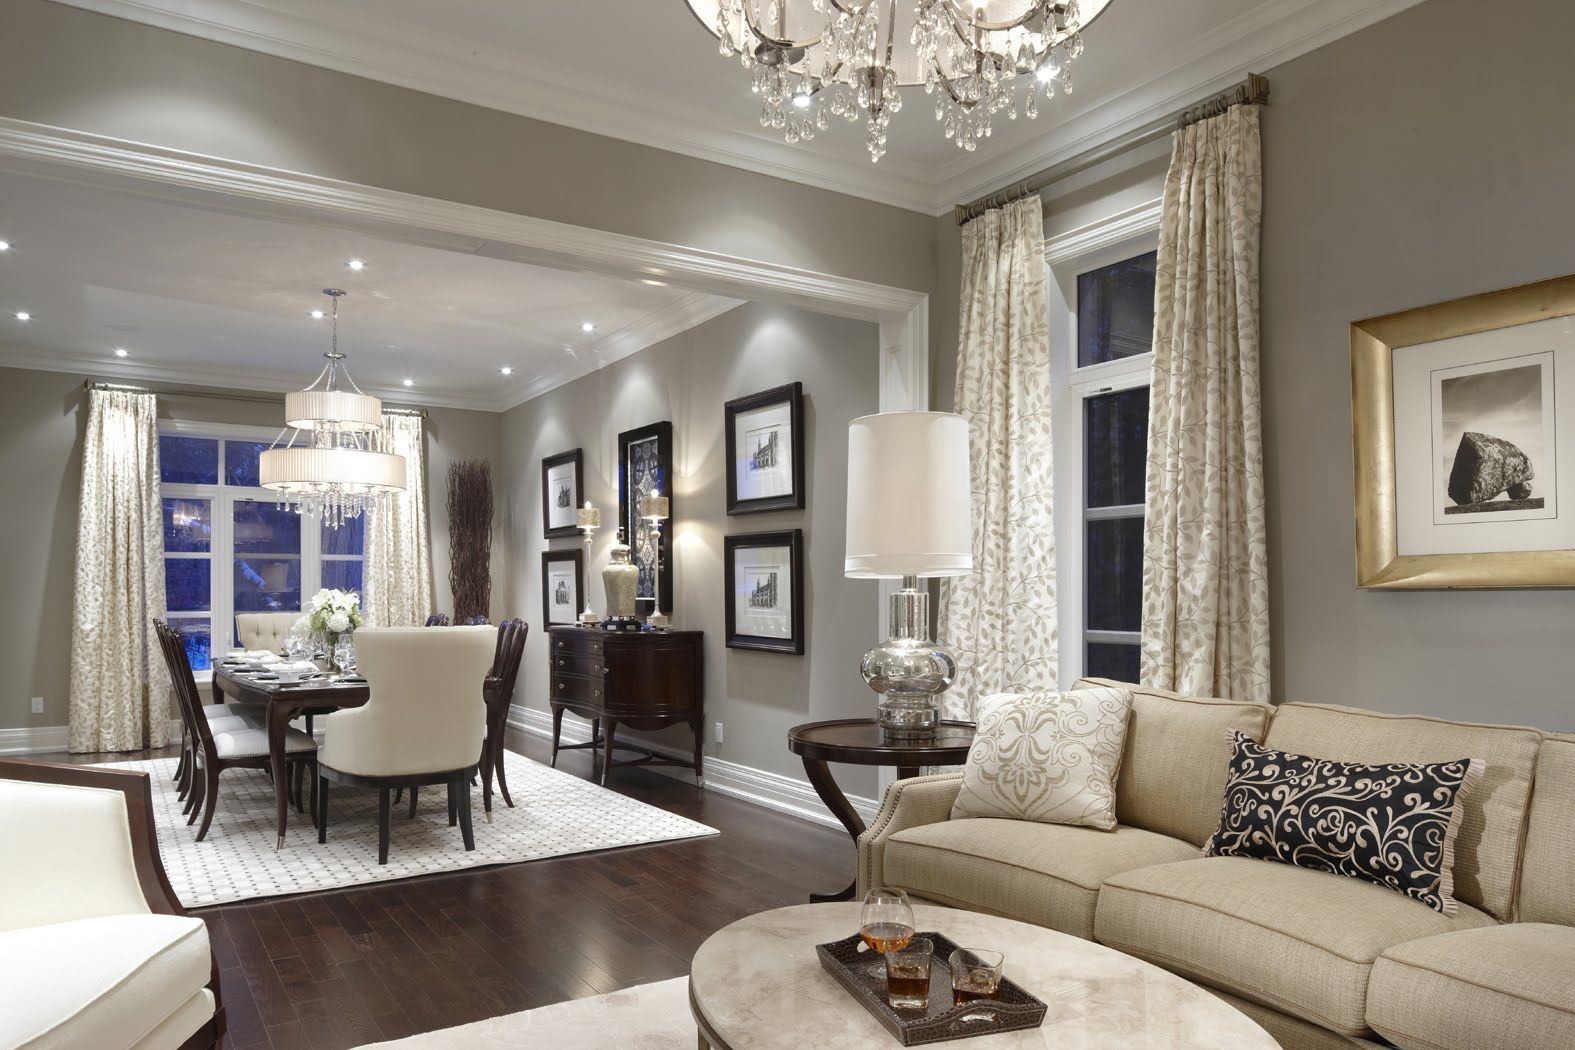 hardwood flooring wake forest nc of benjamin moore colors for your living room decor livingroom ideas inside a traditional living room with medium tone hardwood floors a traditional living room with medium tone hardwood floors